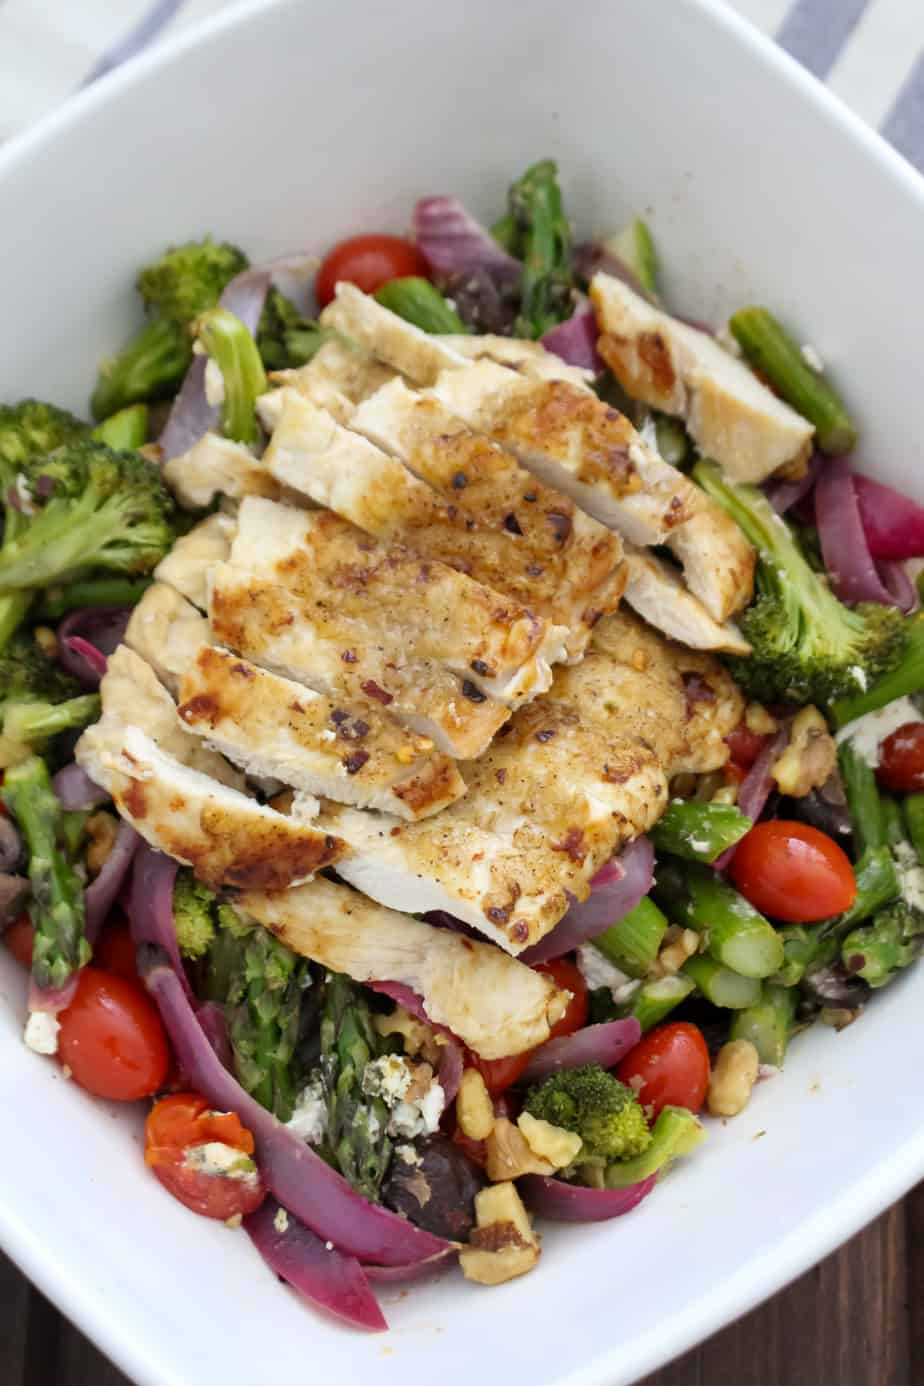 Summer Roasted Vegetable Salad with Chicken | Frugal Nutrition